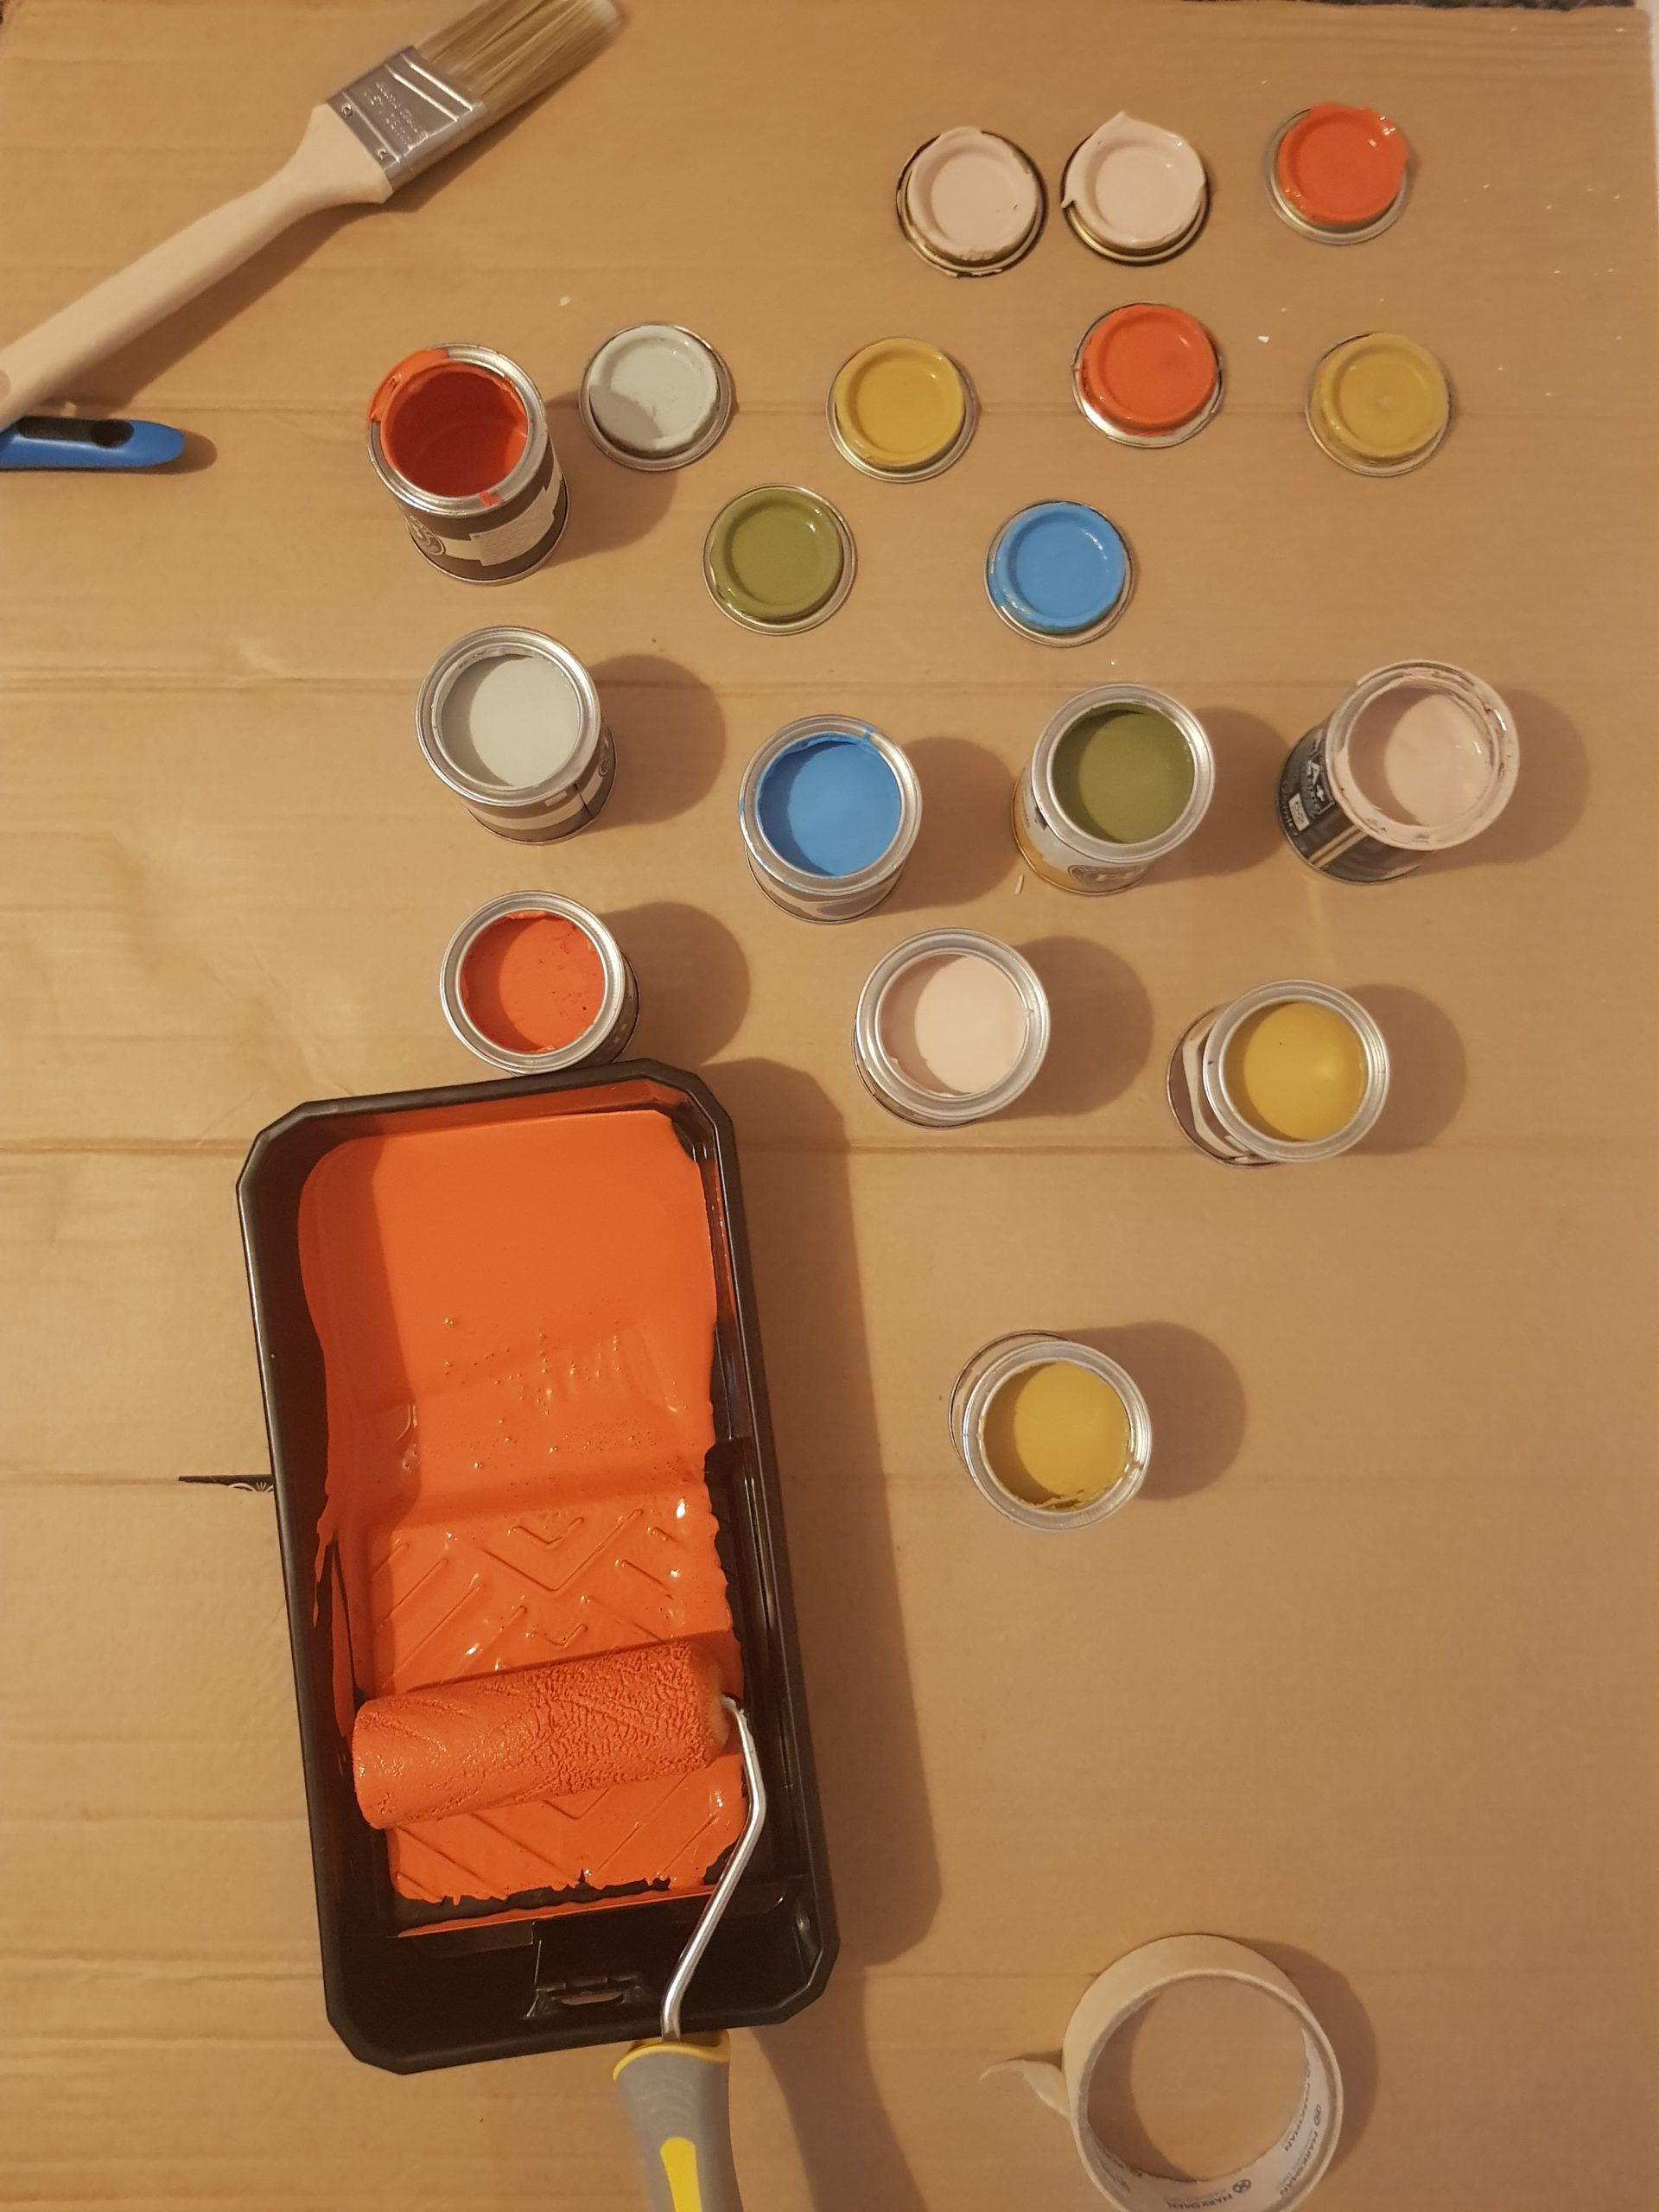 A paint tray with orange paint and several other cans of paint with various colors